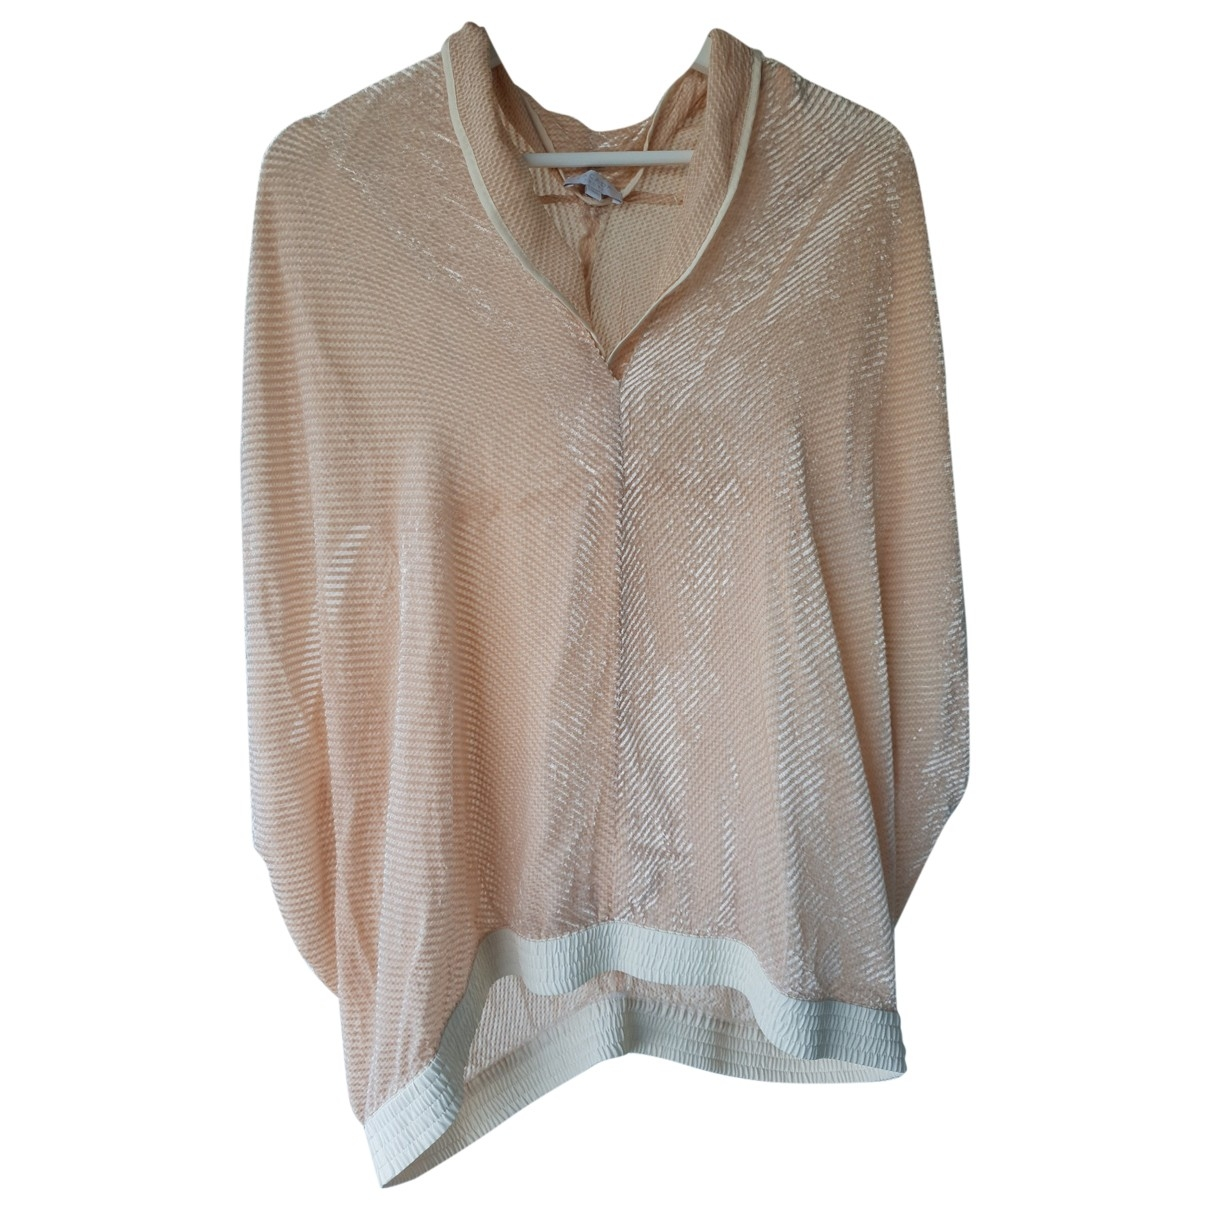 Escada \N Beige Cotton  top for Women XL International